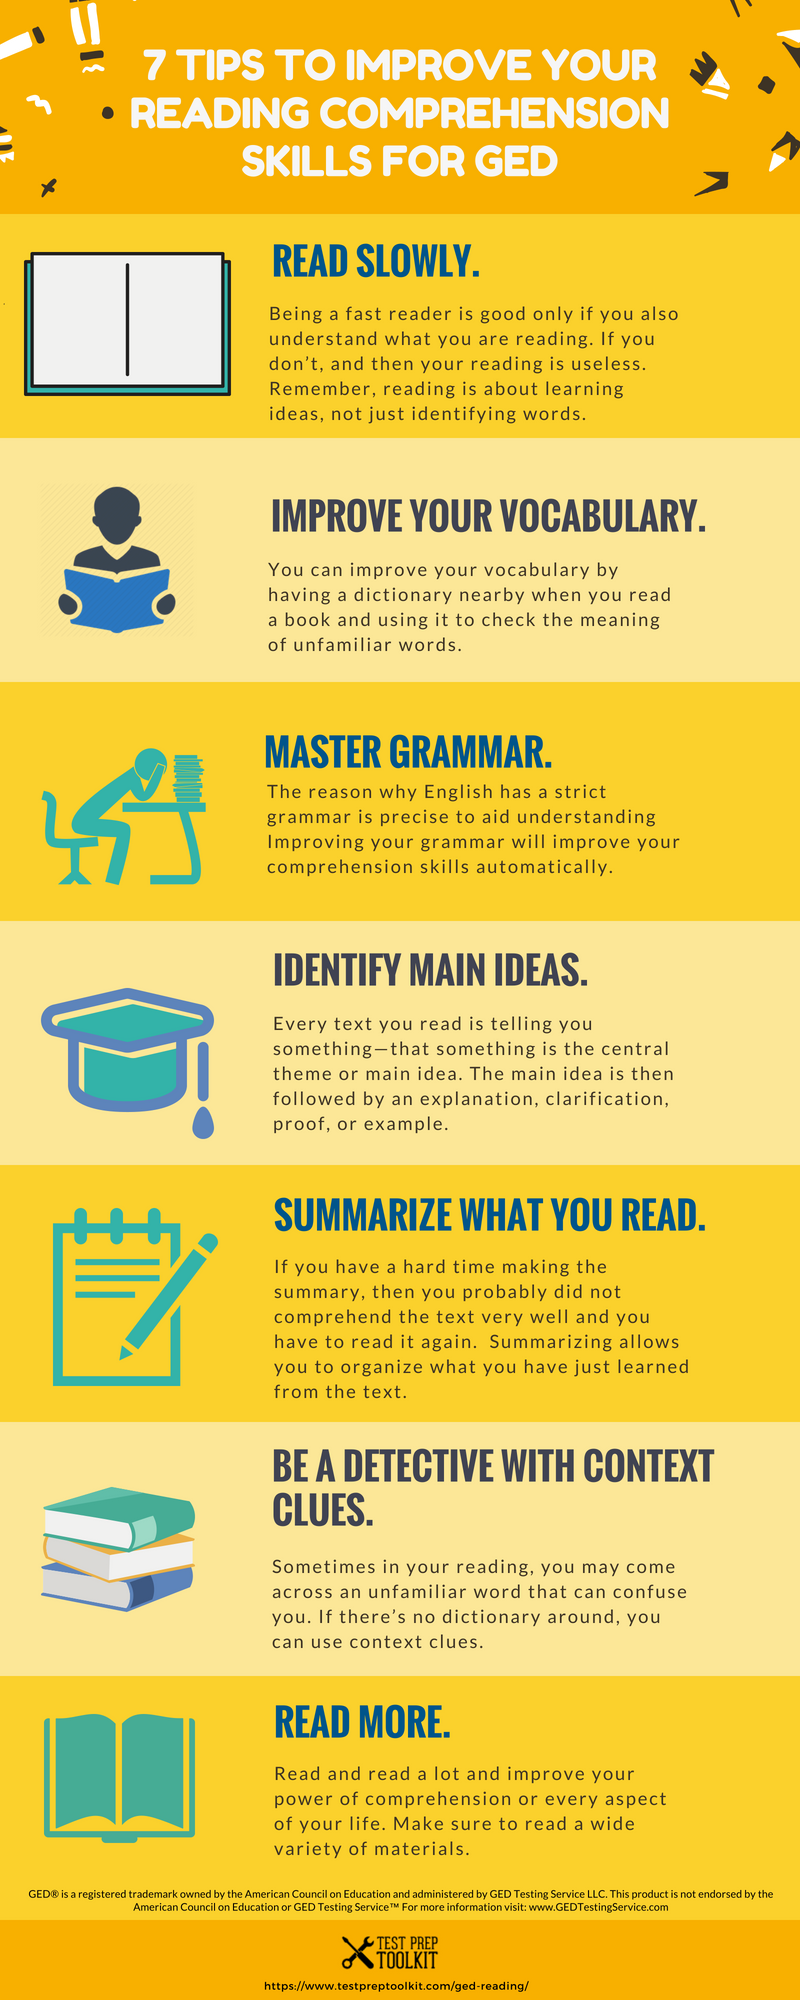 New infographic 🔥 #Study #GED #TestPrepToolkit #GEDStudy #GEDPracticeTest  #OnlineClasses #Learning